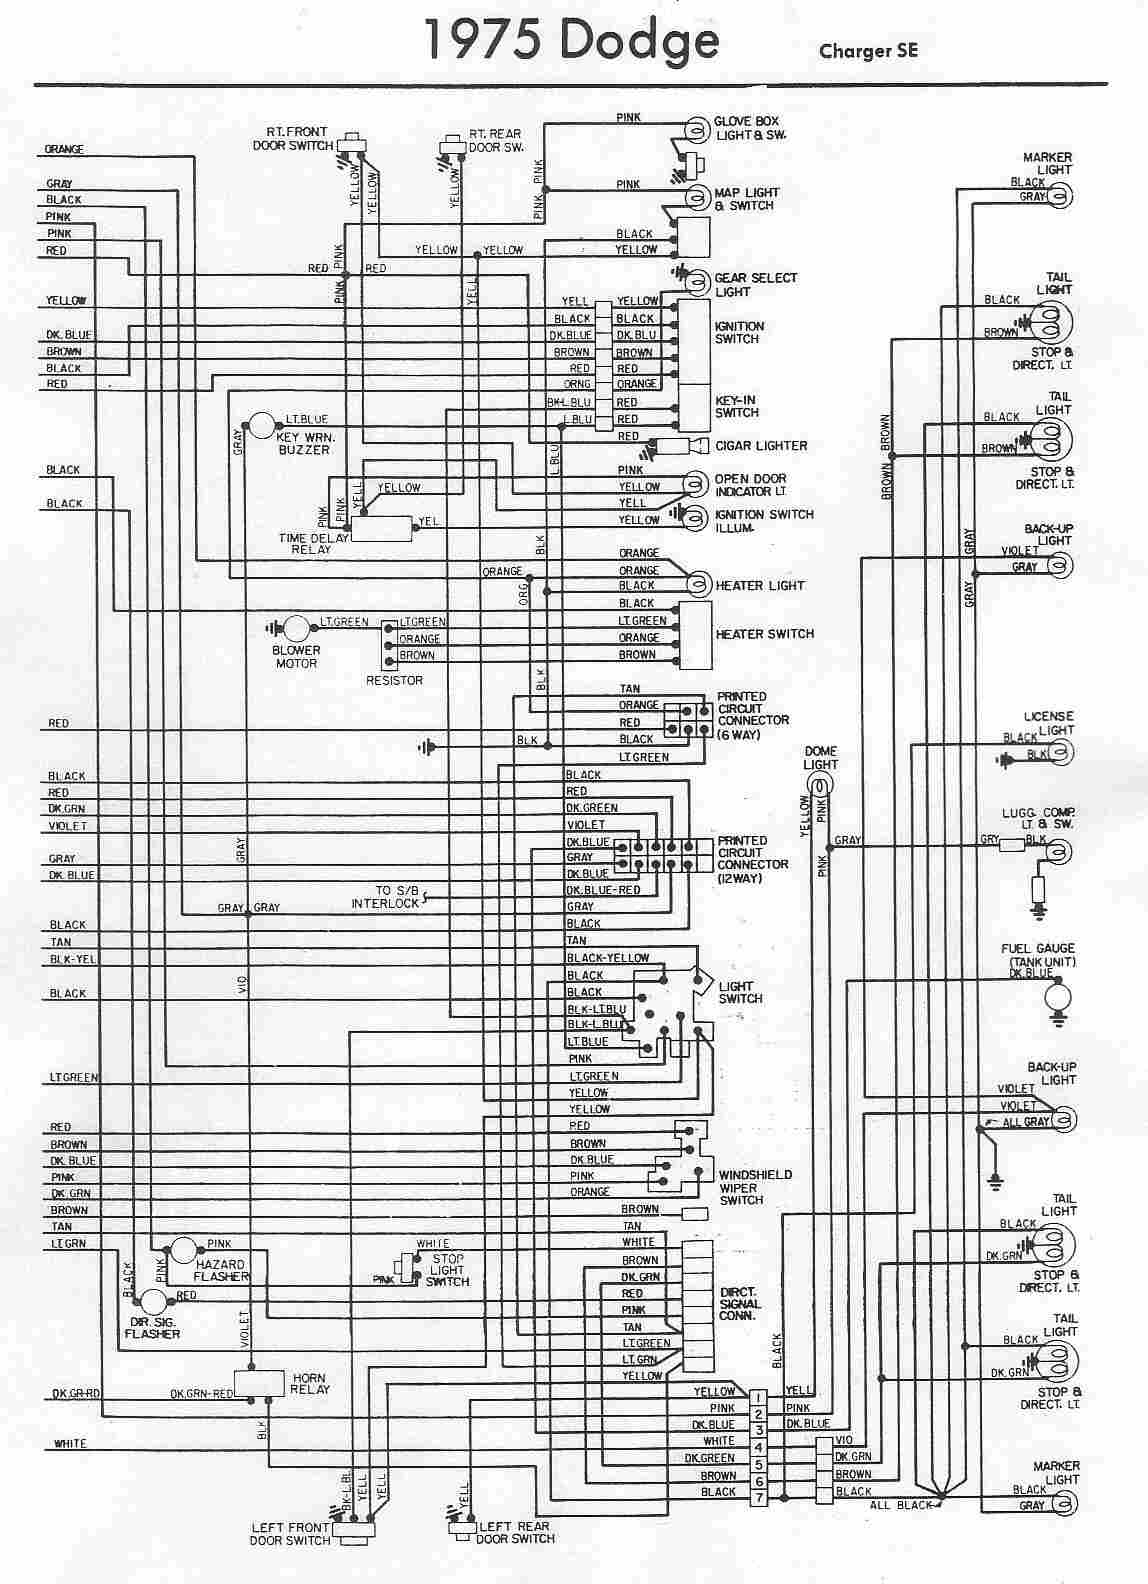 Famous split charge wiring diagram pictures inspiration the best diagram likewise split charge relay wiring diagram on 2004 dodge ram asfbconference2016 Image collections